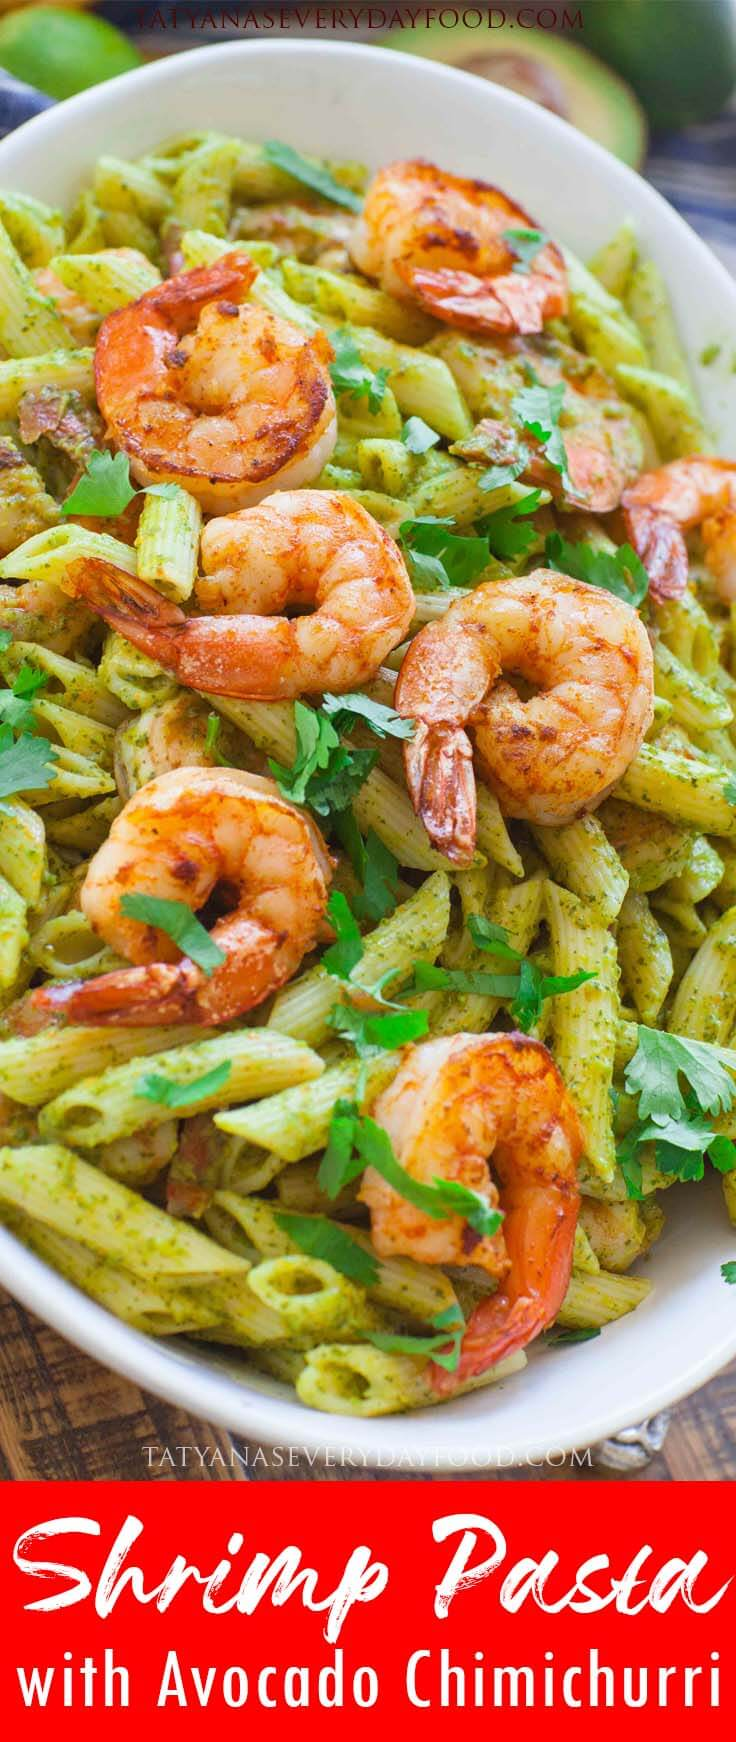 Easy Chimichurri Shrimp Pasta video recipe